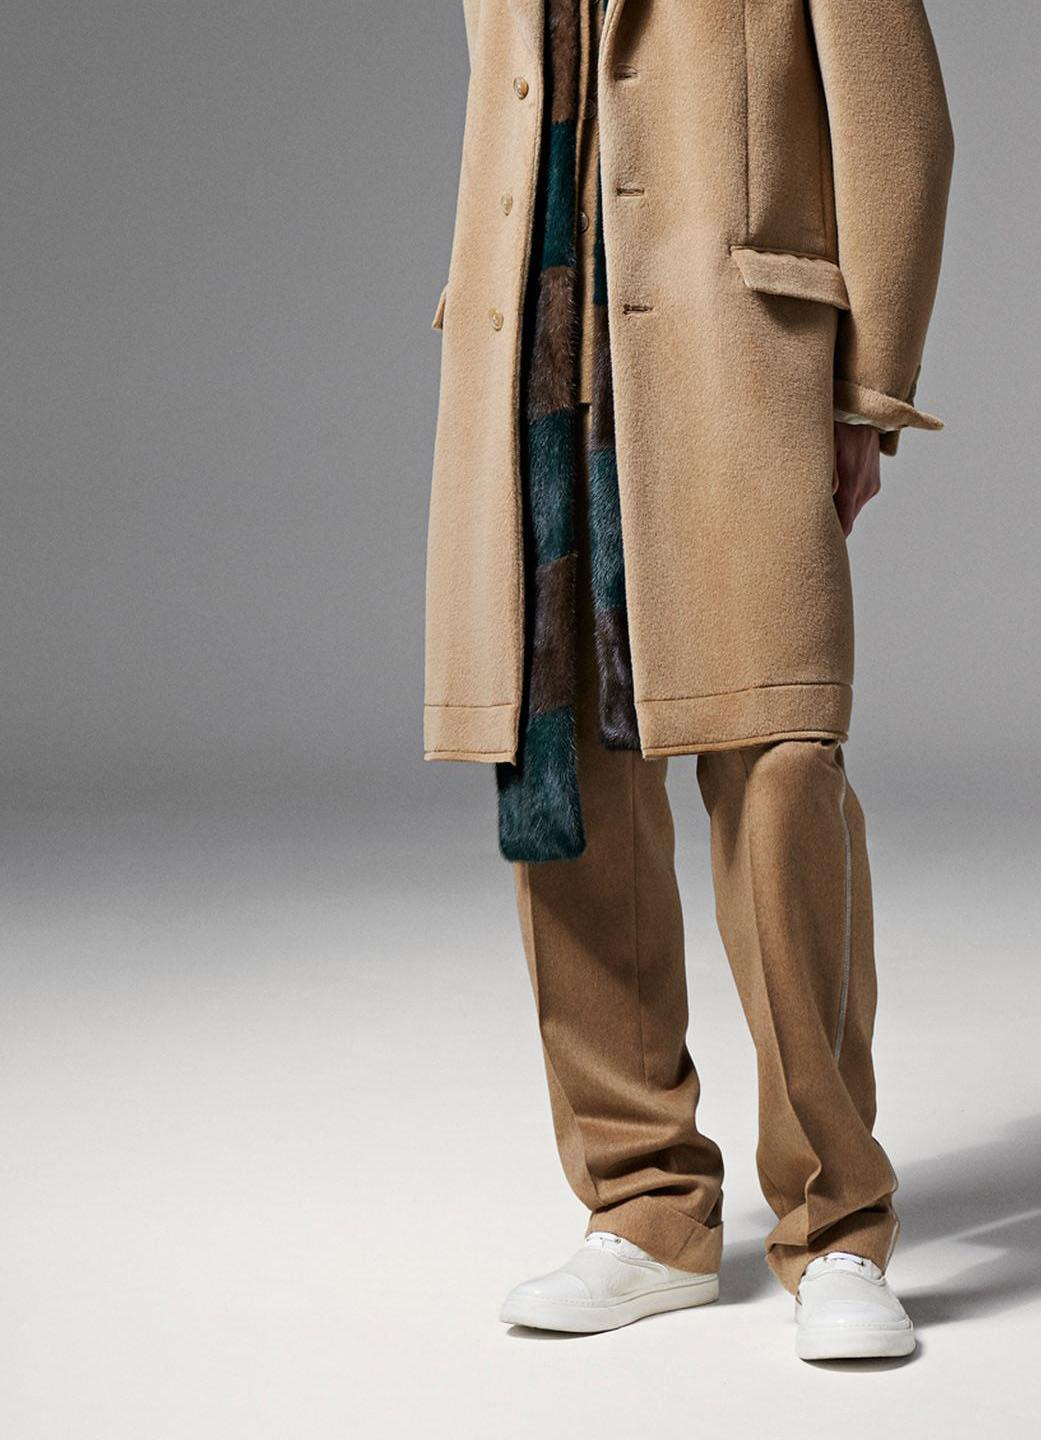 Coat check - stay warm out there: http://t.co/6QwaxRBJWa http://t.co/M1uQpFMIxx